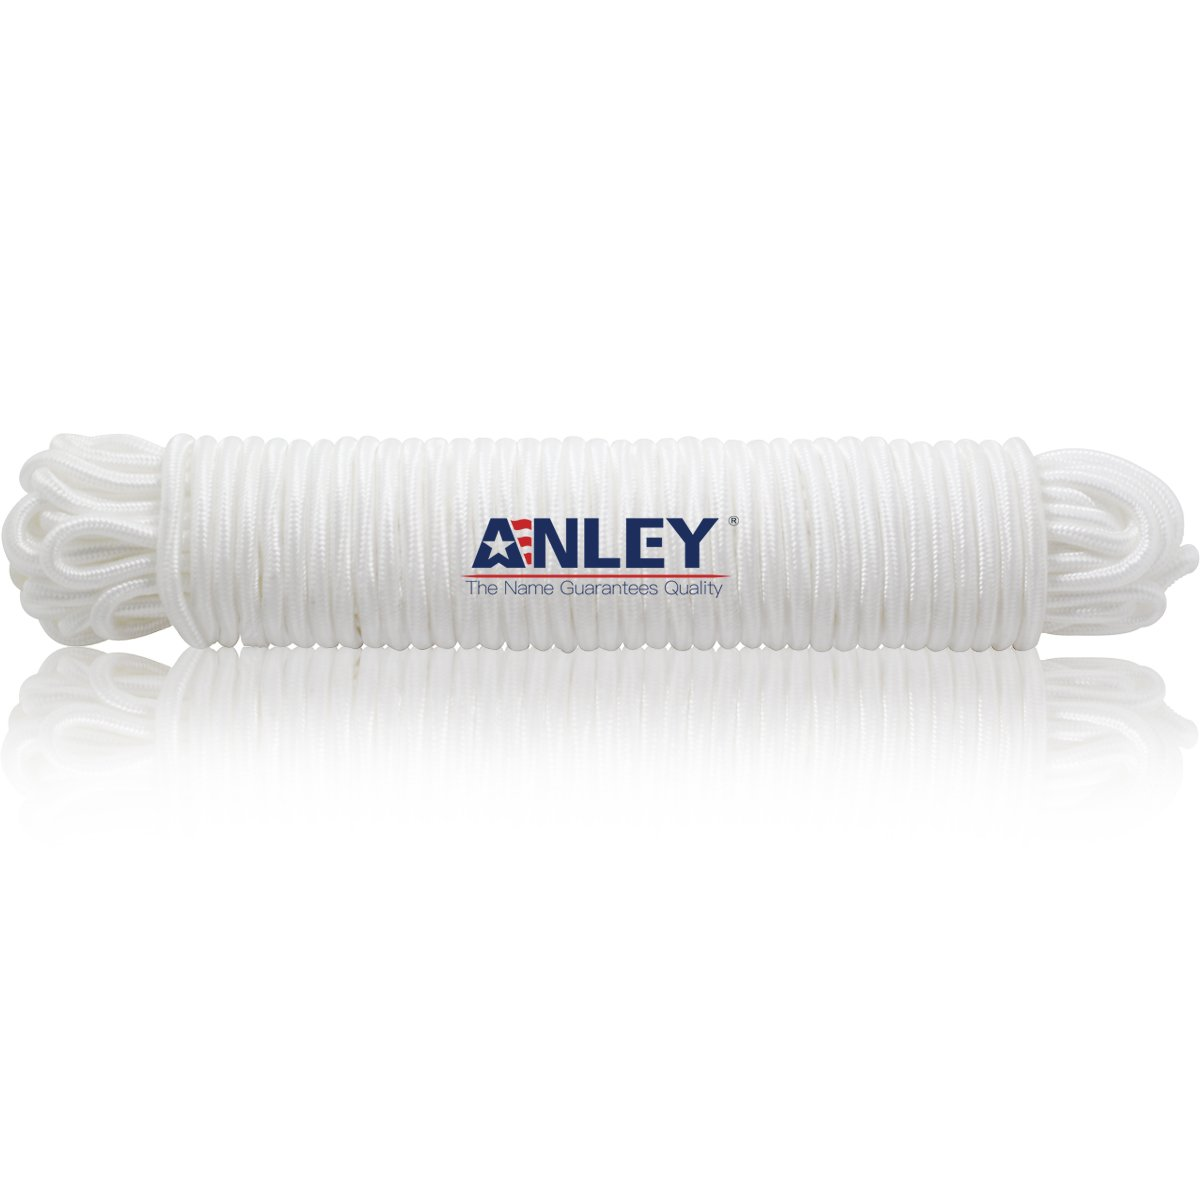 Anley 80 Feet x 1/4'' Flag Pole Halyard Rope, Outdoor Flagpole Accessories - Double Braided, Compatible with Flagpoles Up To 35 Feet (White)